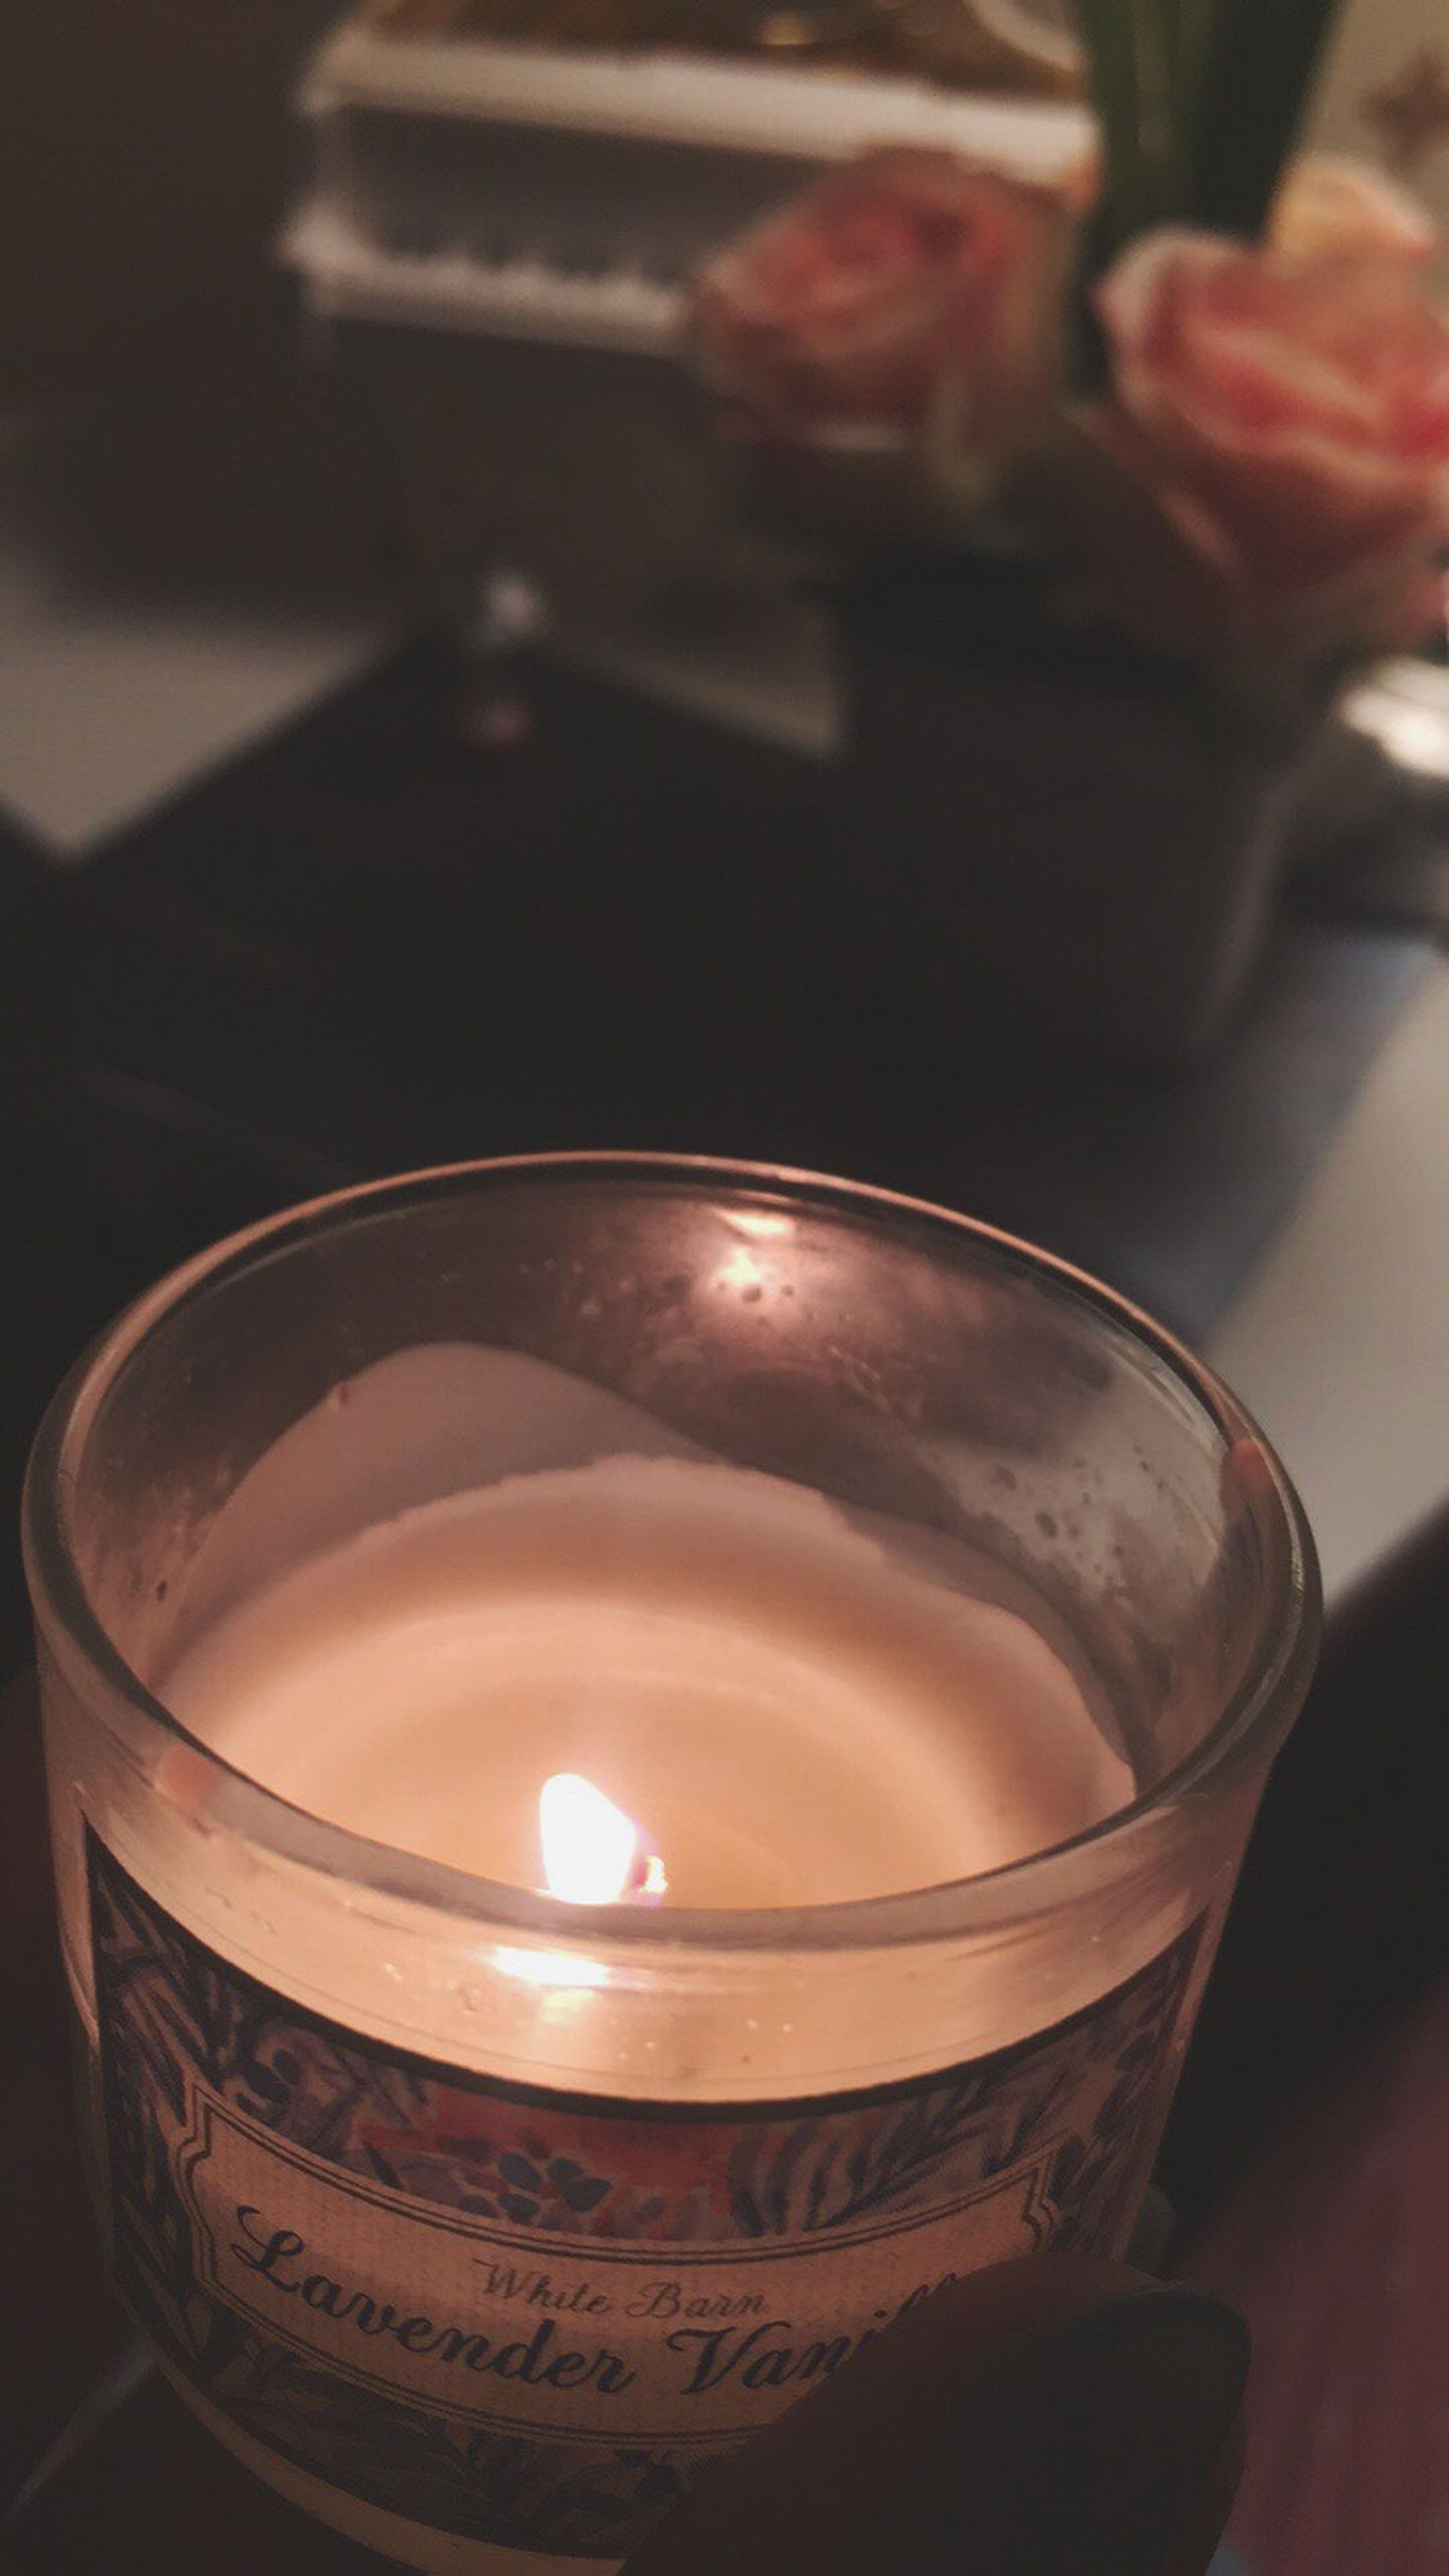 focus on foreground, burning, candle, flame, indoors, heat - temperature, close-up, tea light, no people, day